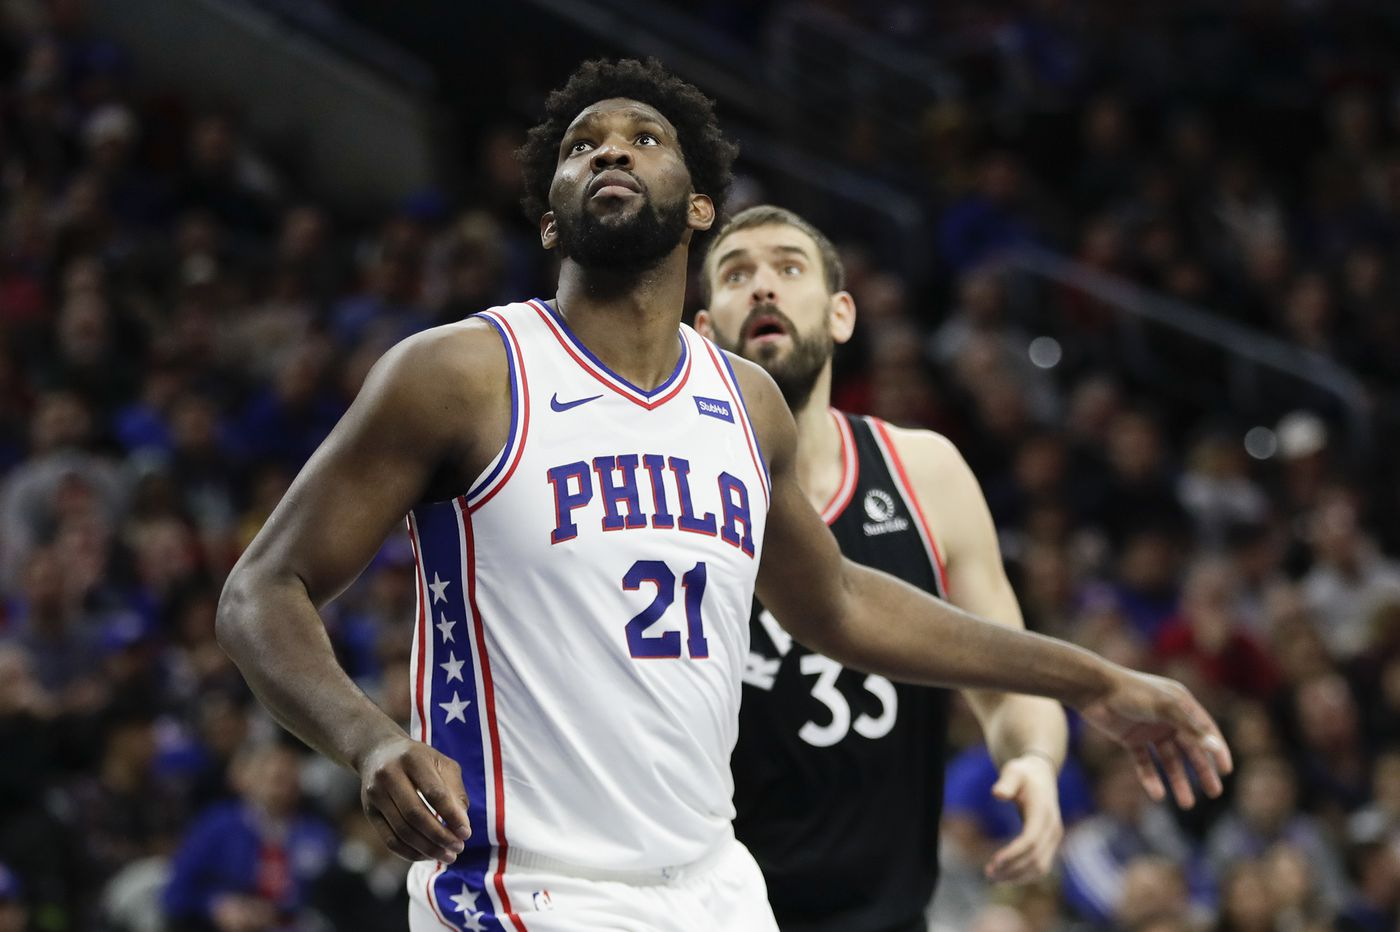 Joel Embiid agrees with Charles Barkley's and Shaq's critique of his play